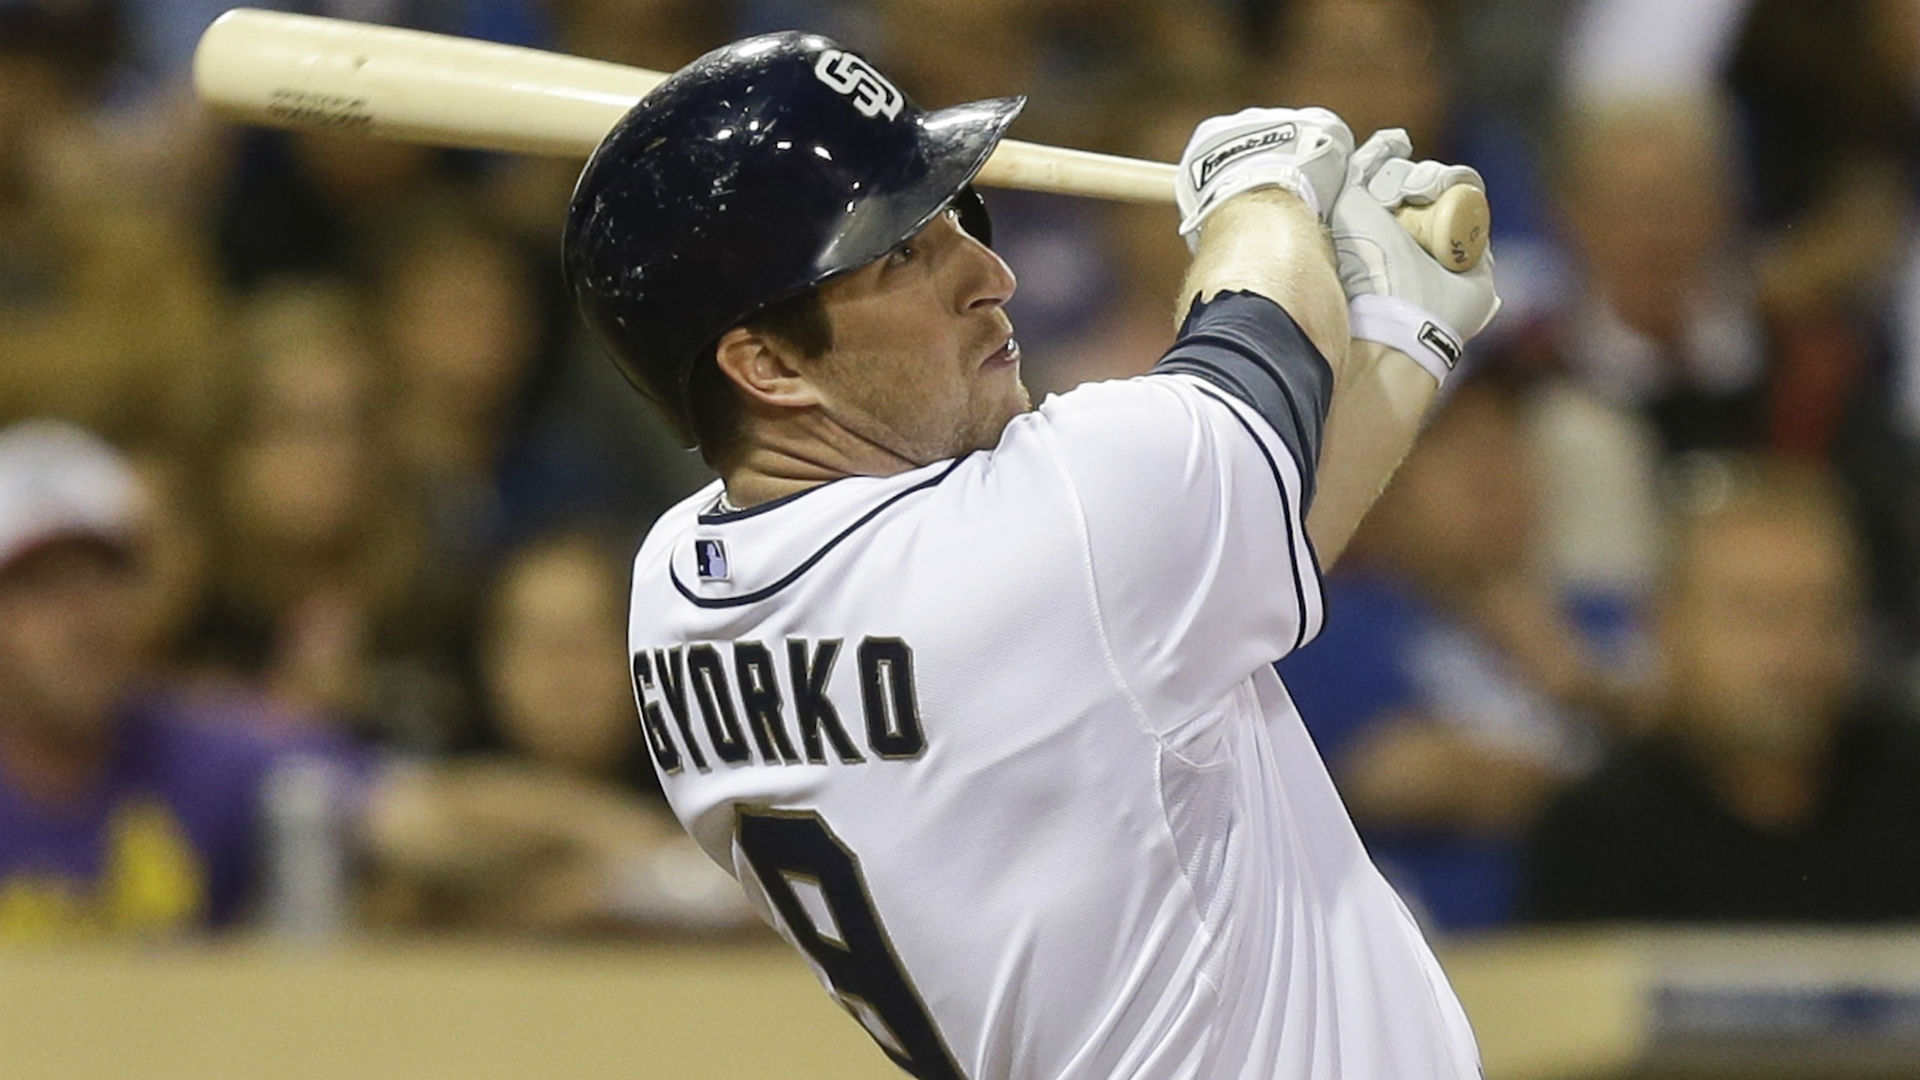 Fantasy baseball sleepers: Can Gyorko be a 30-homer hitter at PETCO Park?